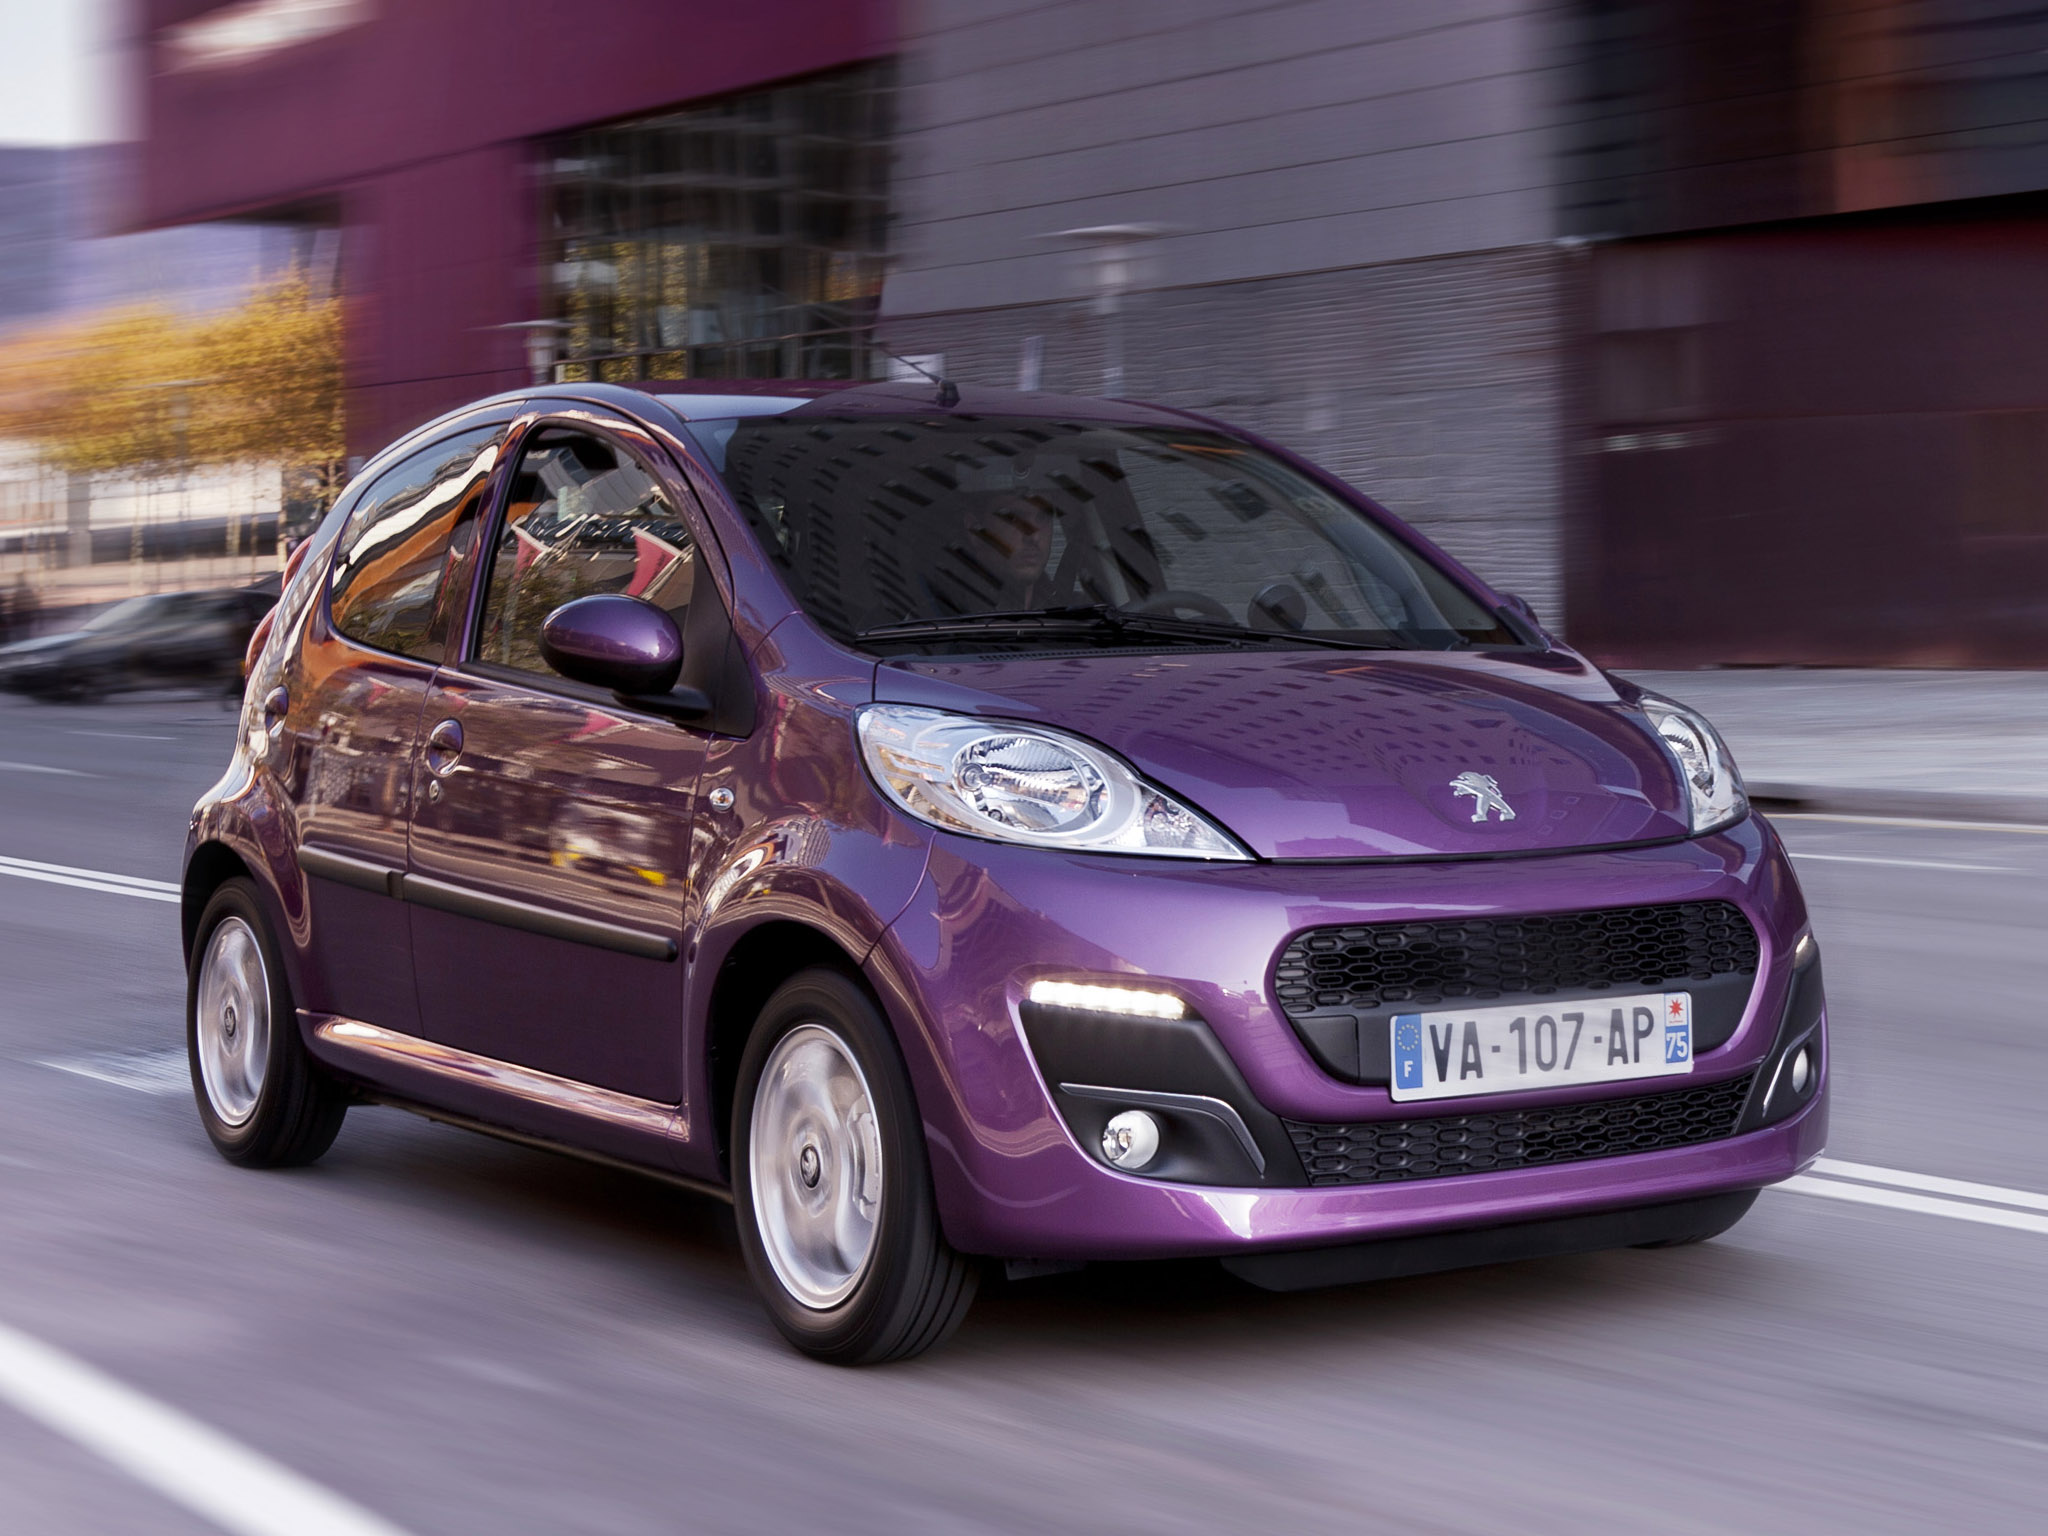 peugeot 107 5 door 2012 peugeot 107 5 door 2012 photo 07 car in pictures car photo gallery. Black Bedroom Furniture Sets. Home Design Ideas